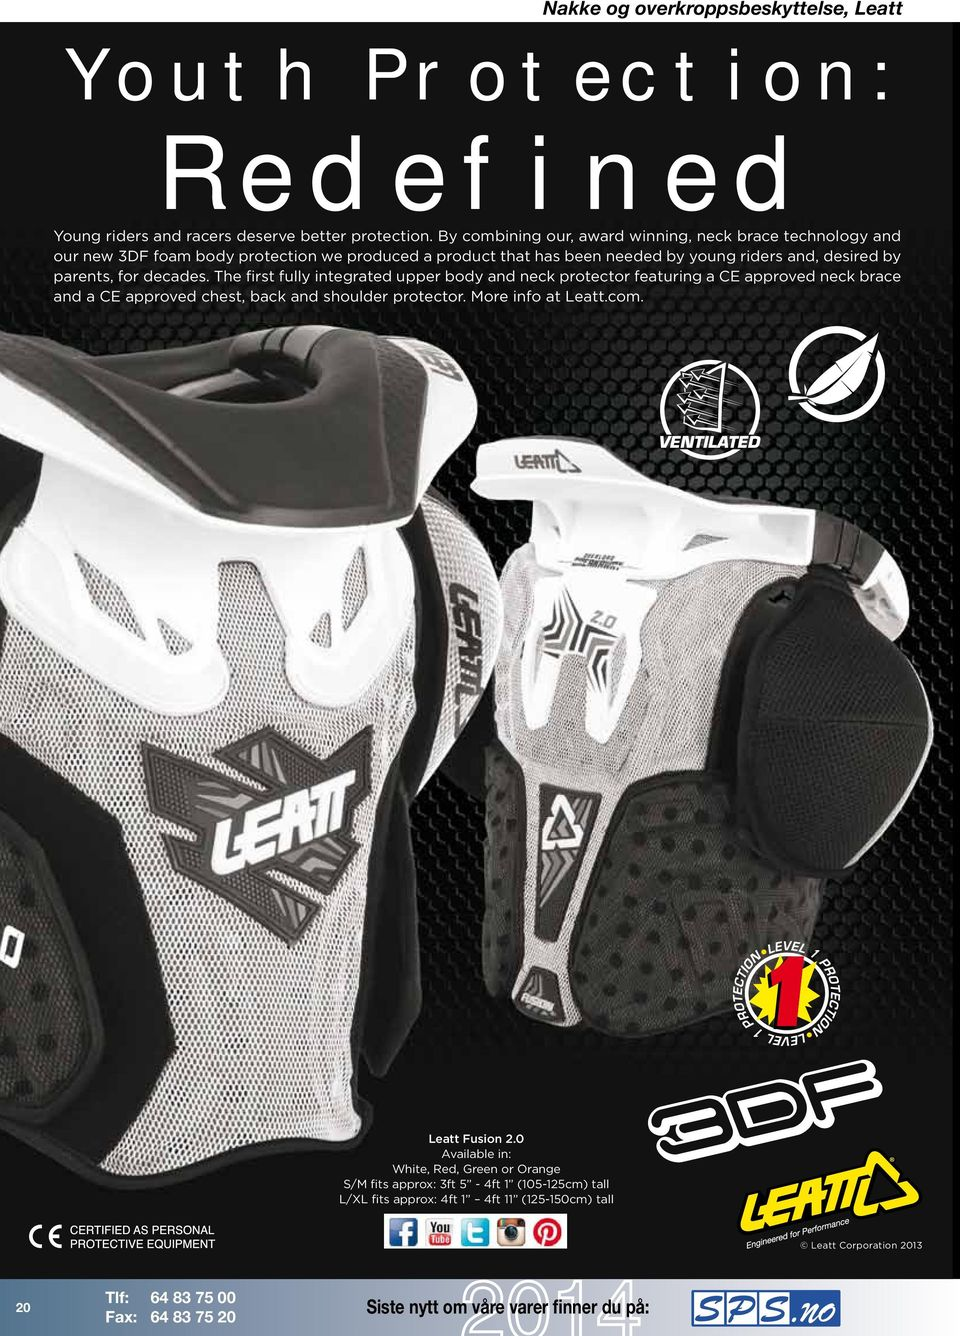 parents, for decades. The first fully integrated upper body and neck protector featuring a CE approved neck brace and a CE approved chest, back and shoulder protector.